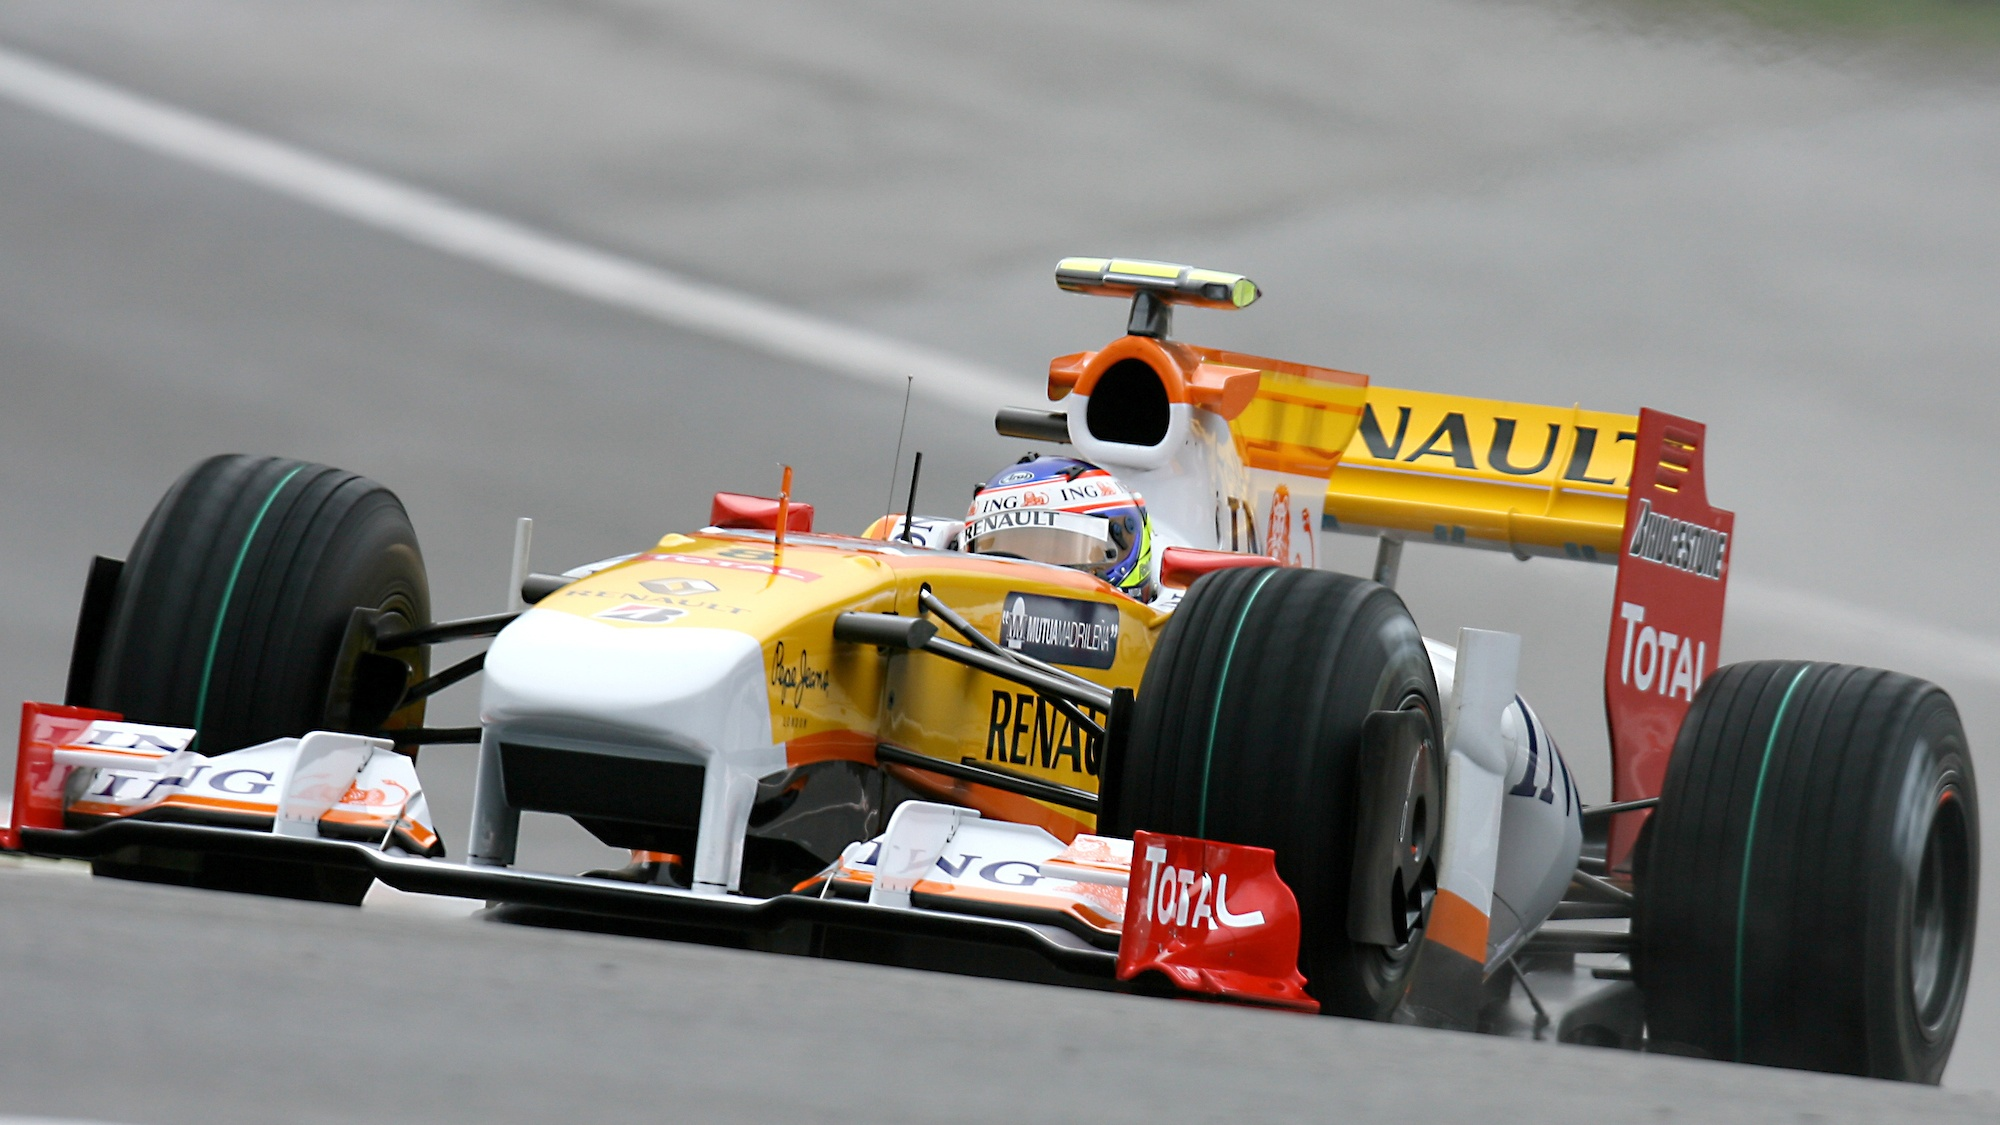 Romain Grosjean, 2009 Belgian GP